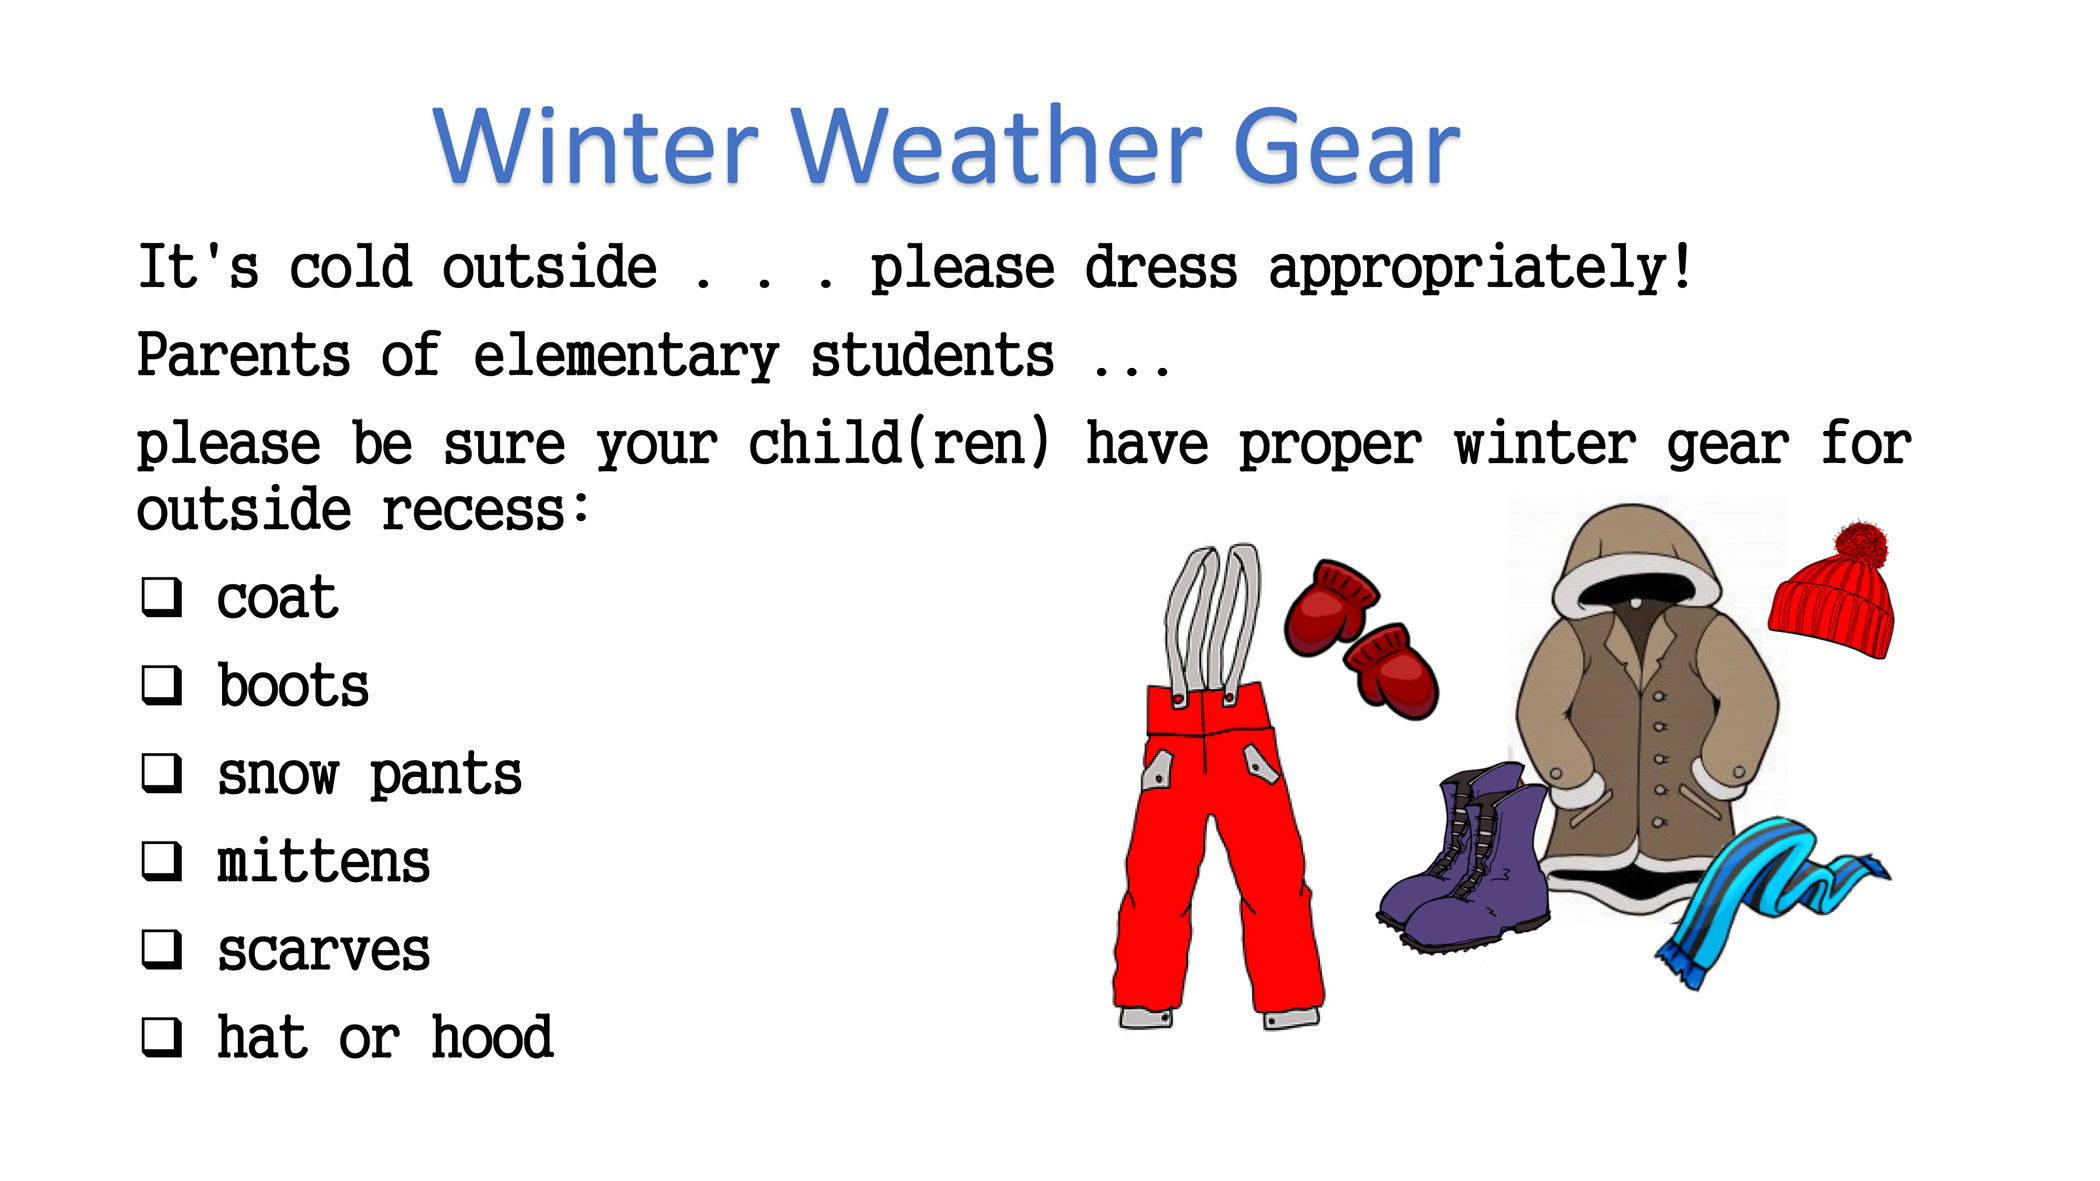 Image of outdoor winter clothing